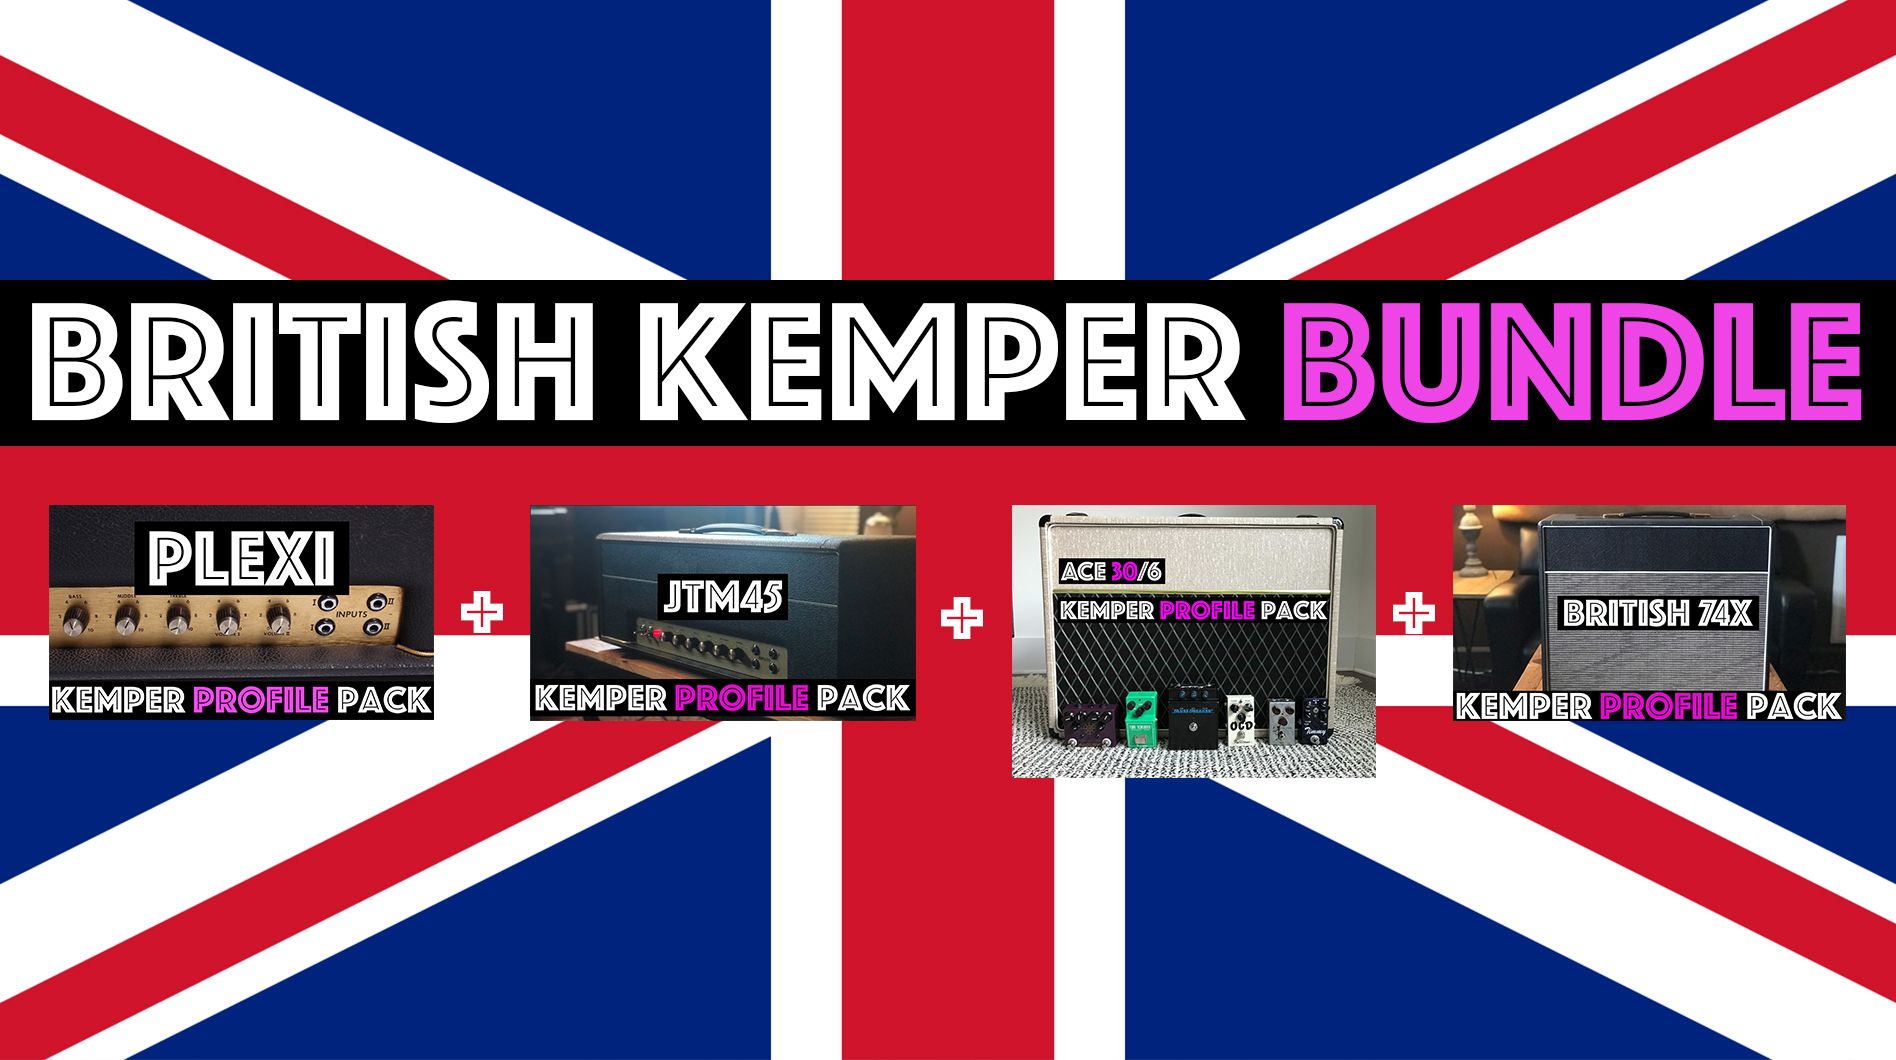 British-Kemper-Bundle.jpg